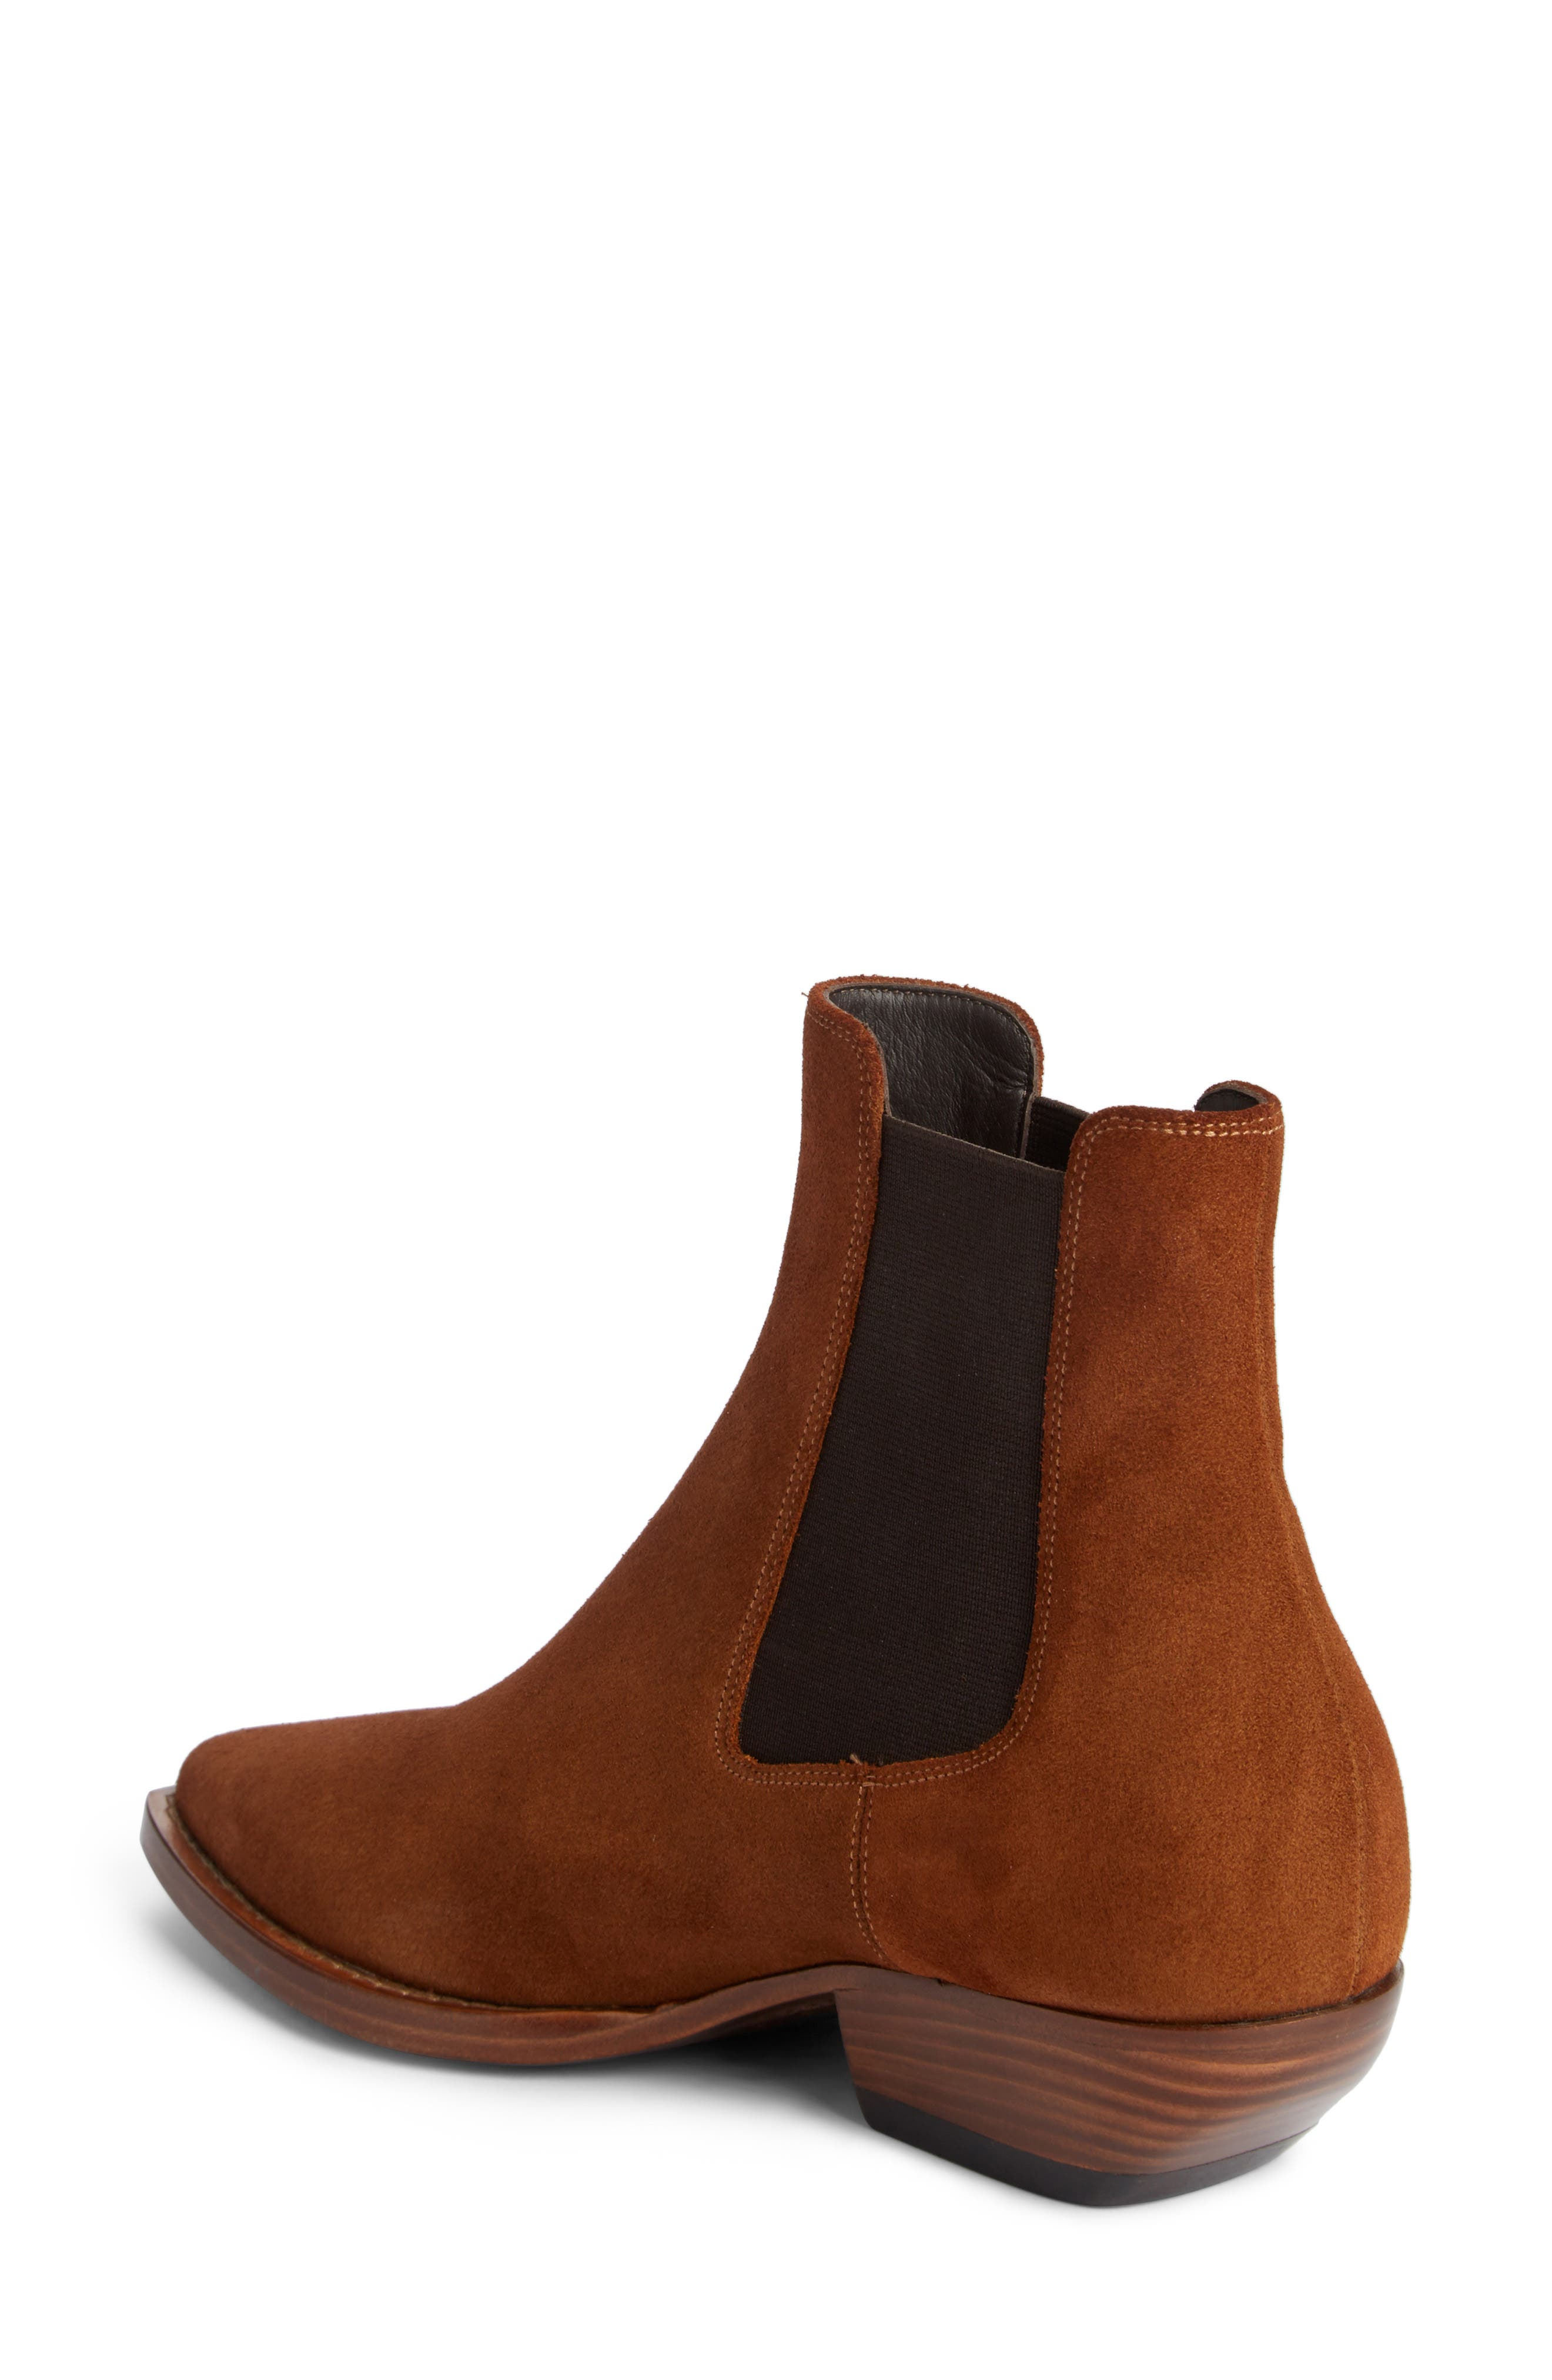 Theo Boot,                             Alternate thumbnail 2, color,                             Land Suede